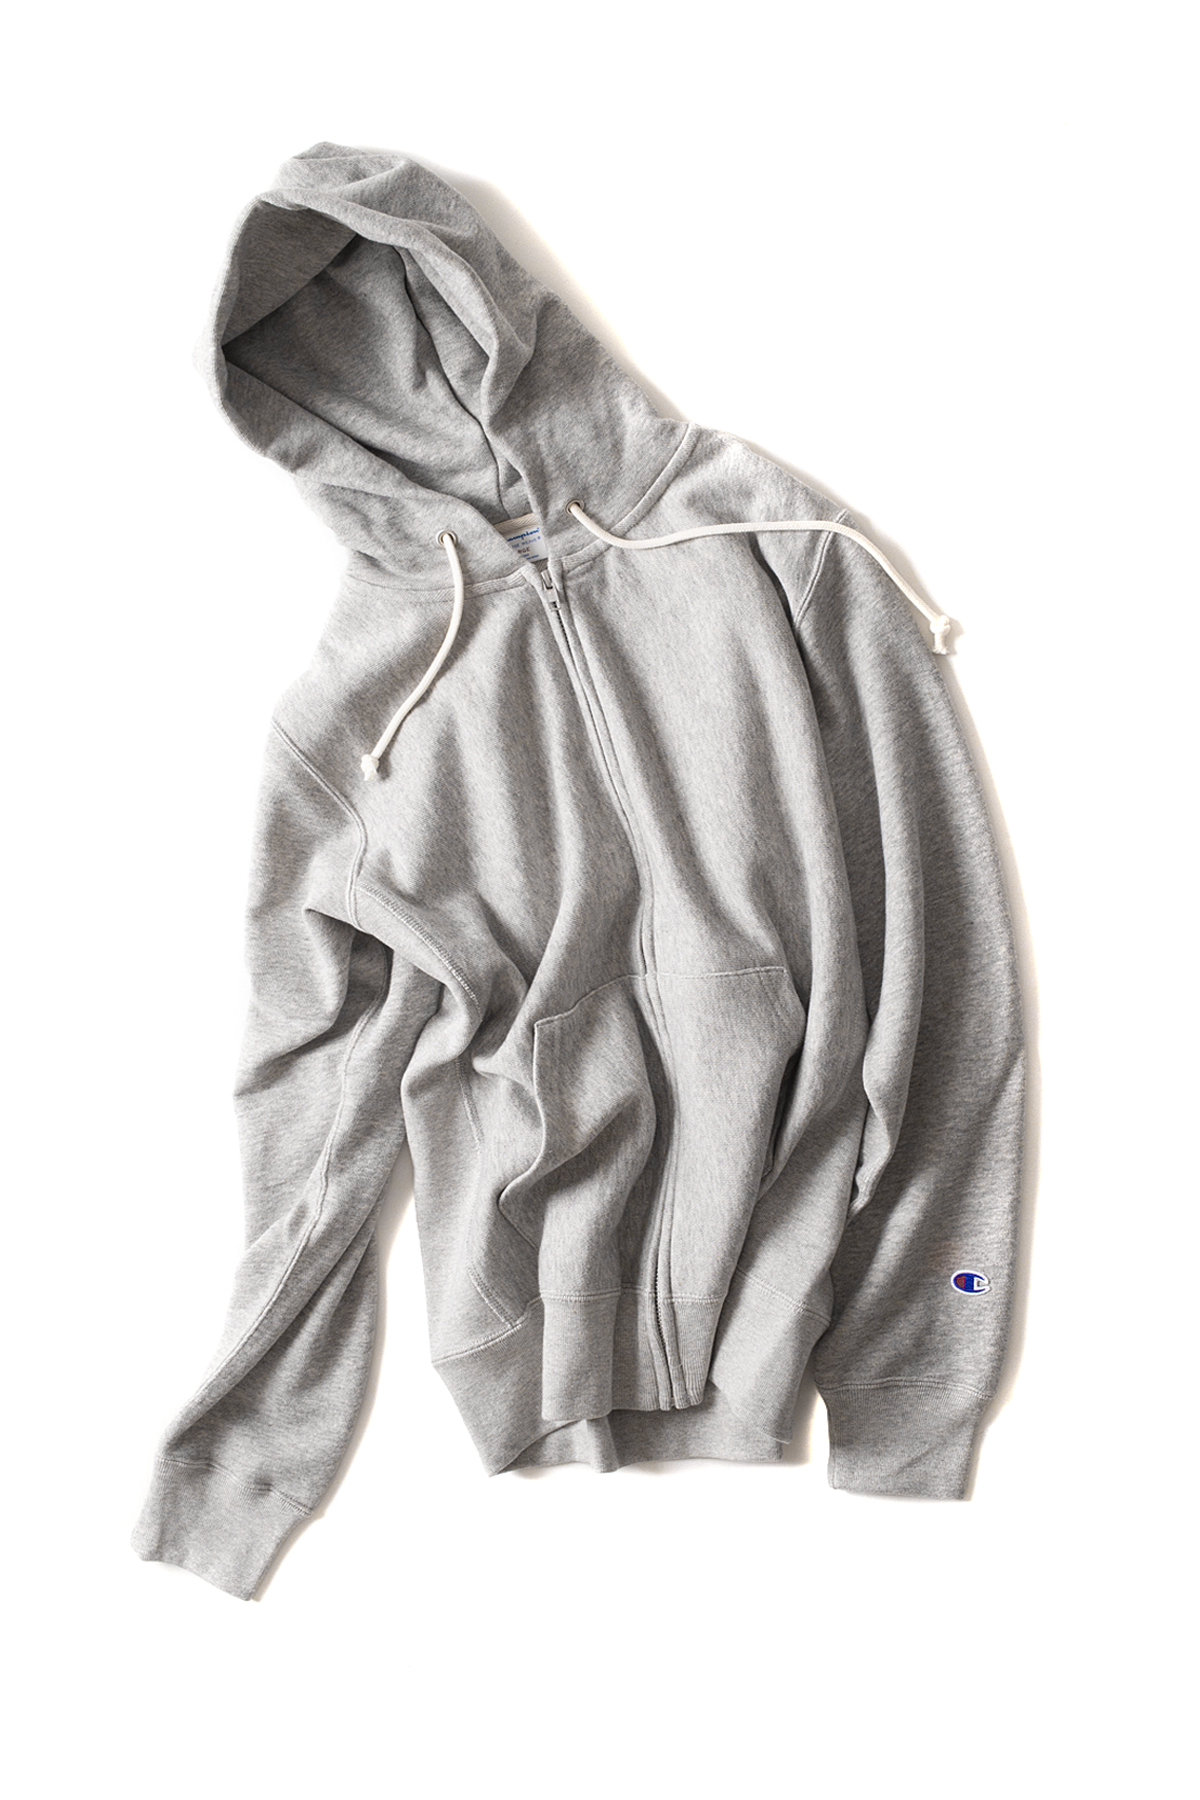 Champion : Reverse Weave Zips Wet Parker (Grey)